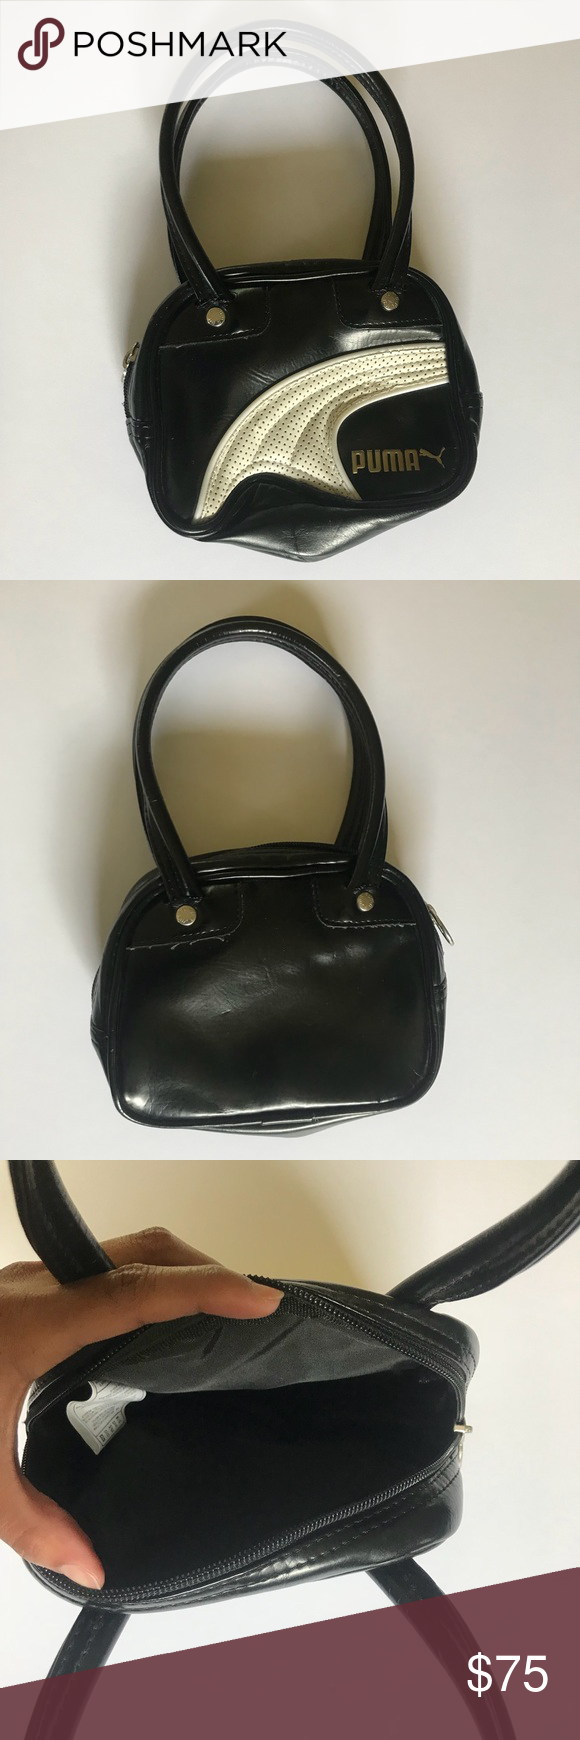 daa4fa36ba Puma Vintage Mini Leather Bag Excellent preowned condition vintage Puma  leather mini bag Approx. 10.5 inches tall (including handles) Approx.